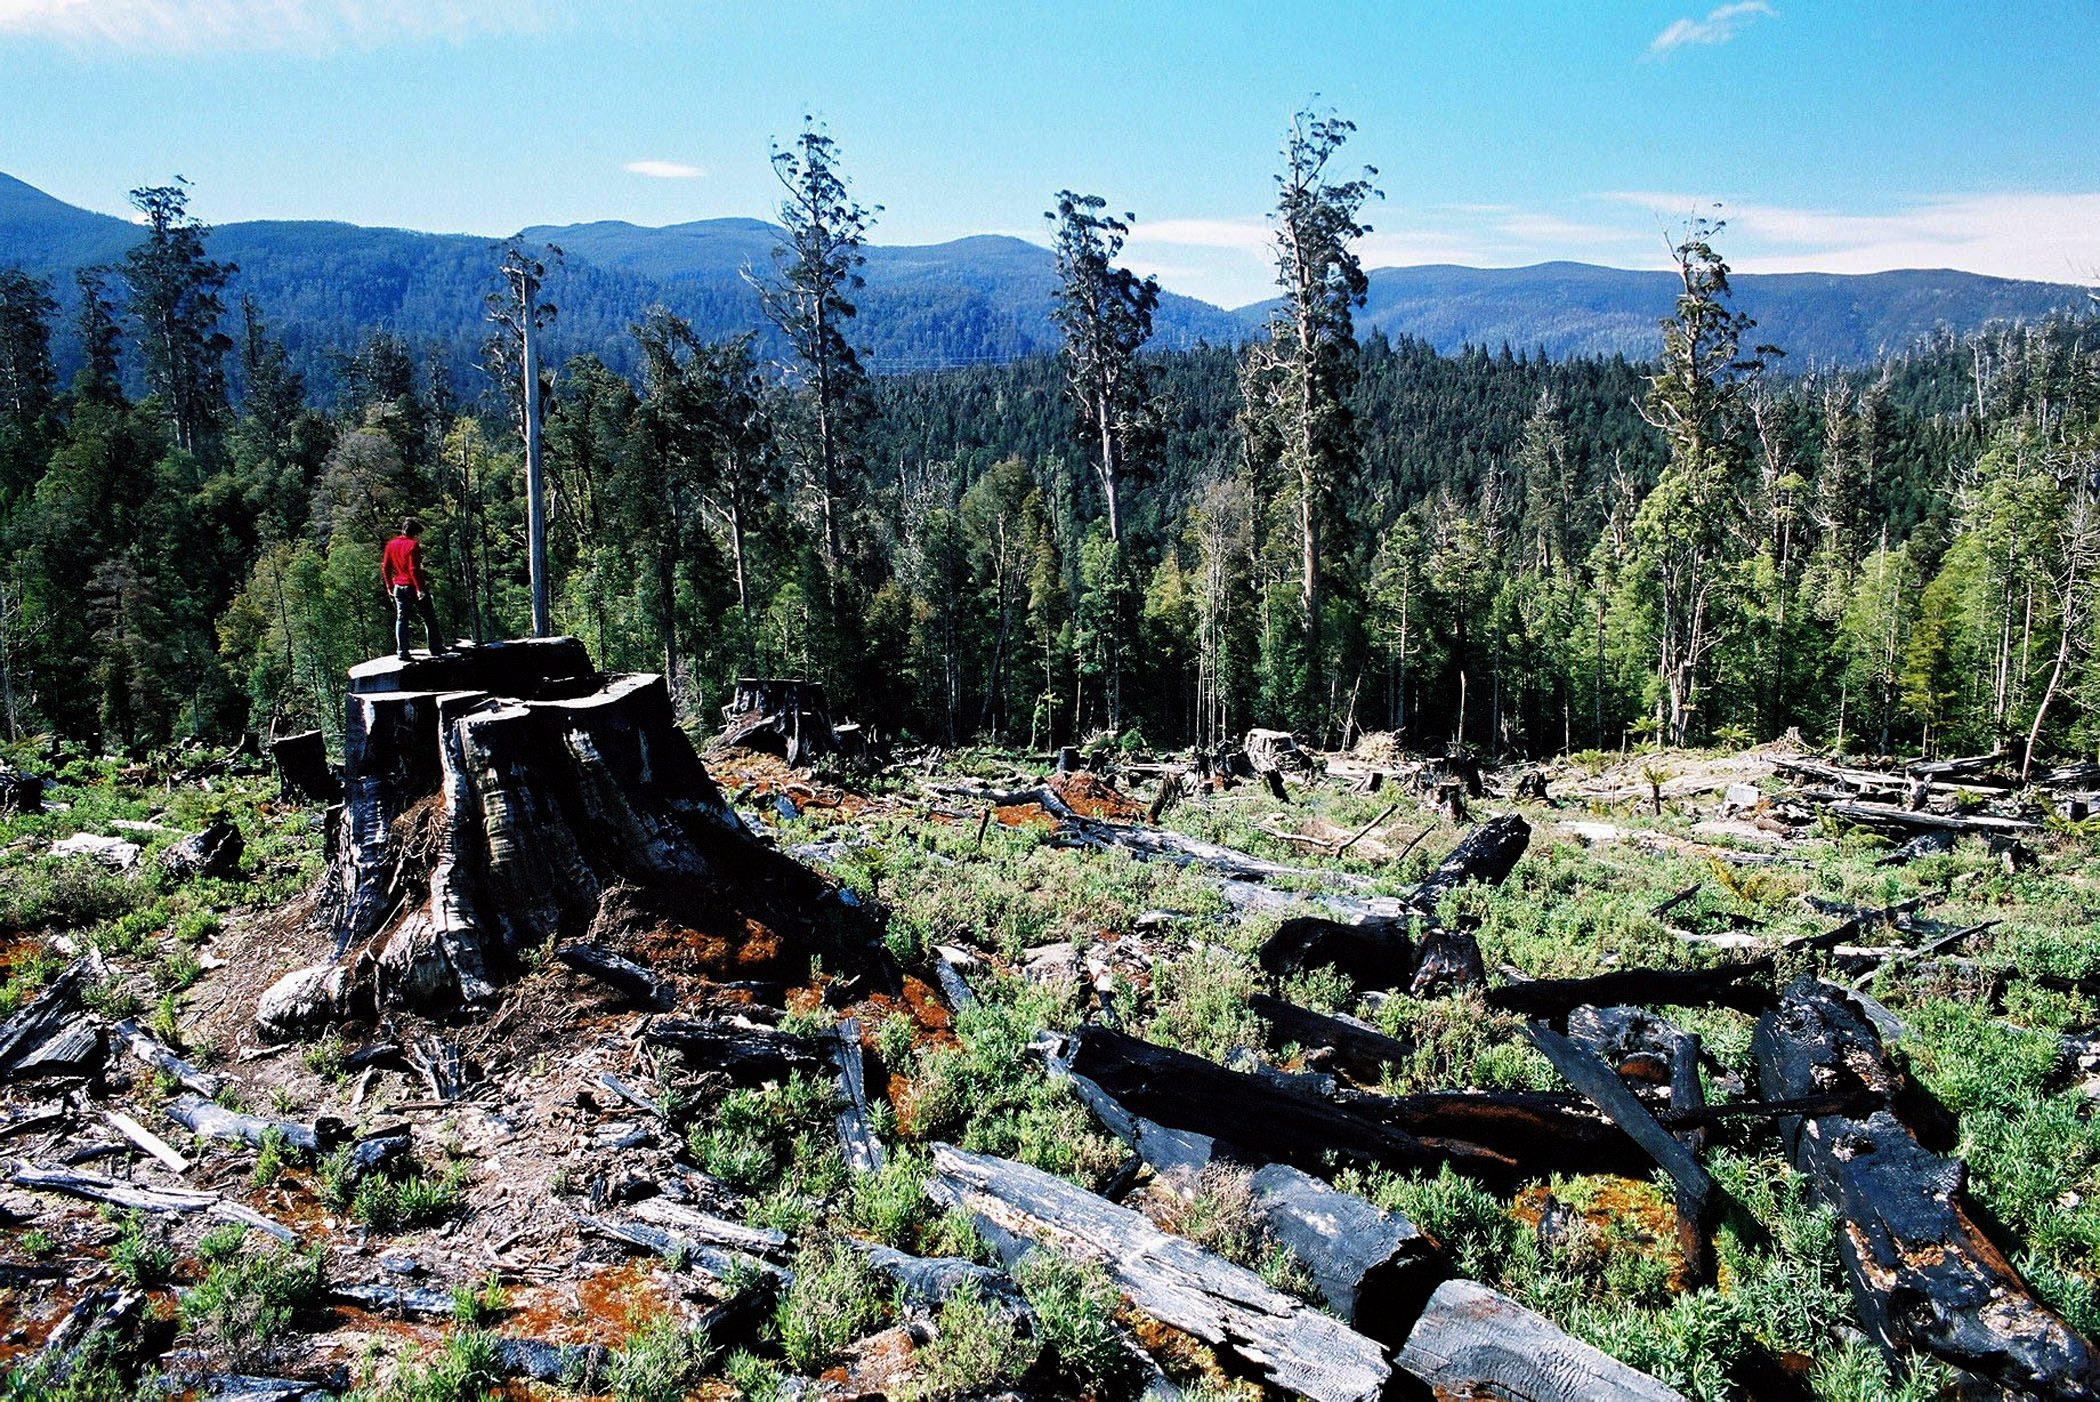 An area of Tasmania's Styx forest after logging has taken place on Nov. 12, 2003.